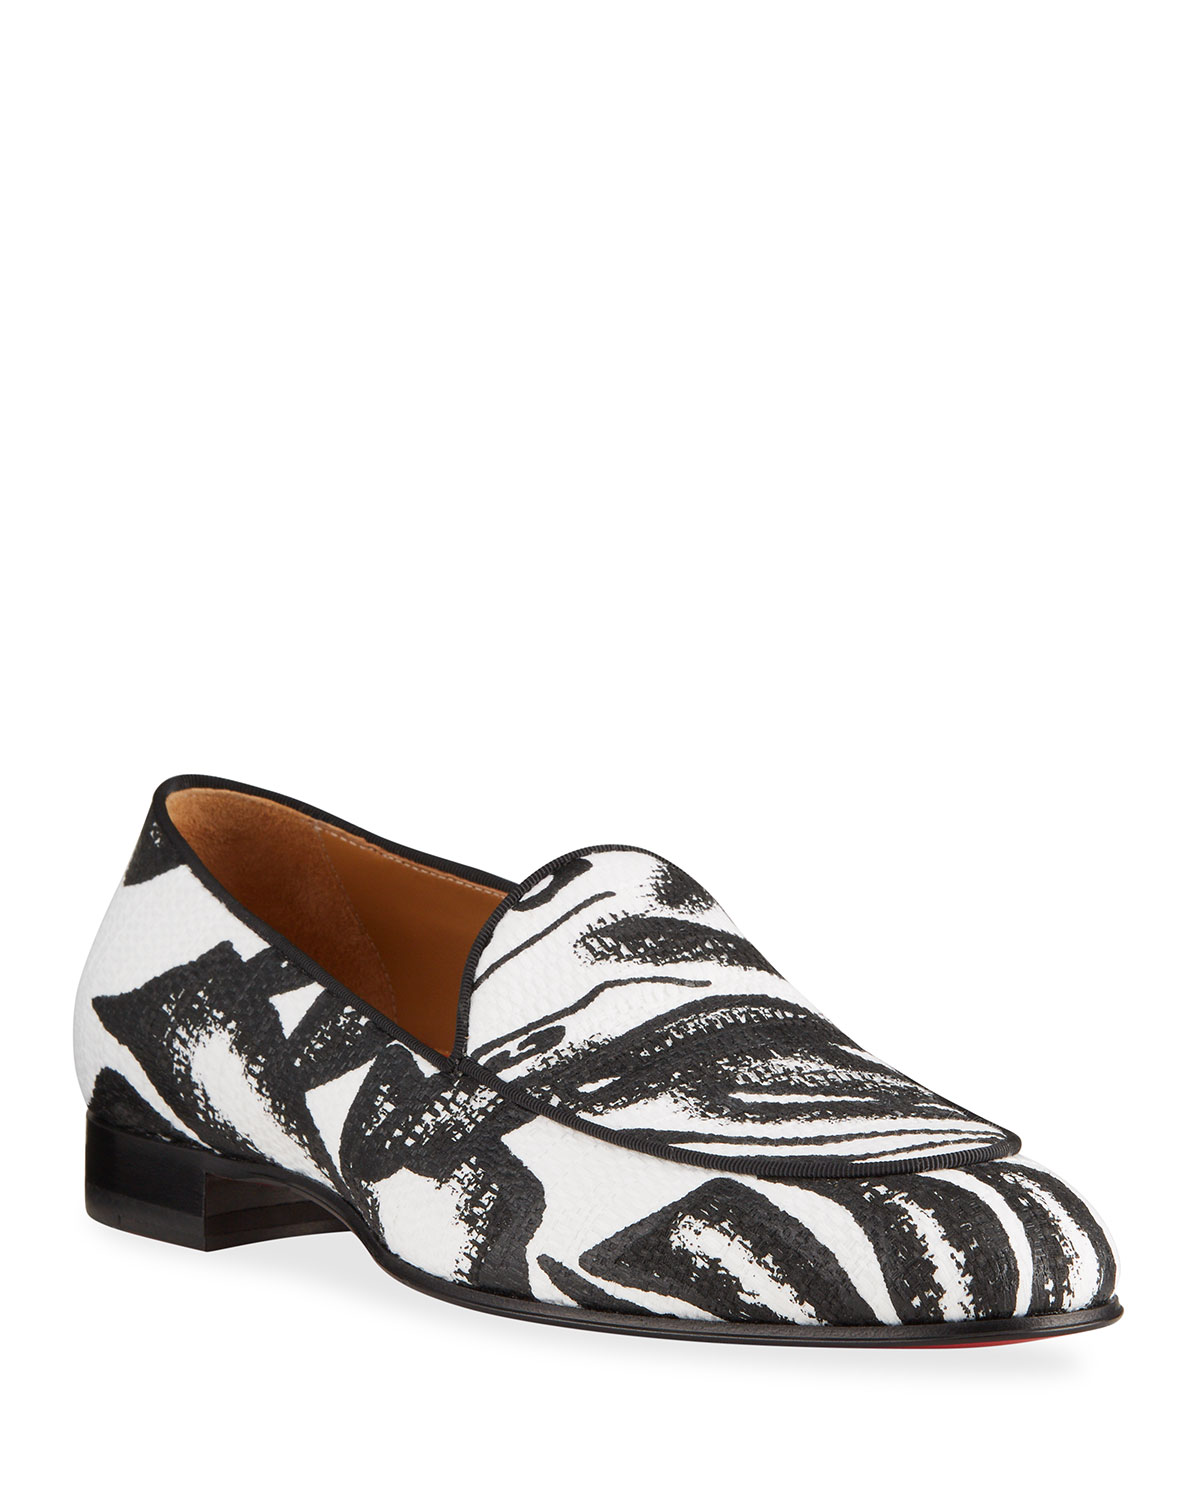 Christian Louboutin MEN'S STYLE ON THE NILE PRINTED RED SOLE SLIP-ONS